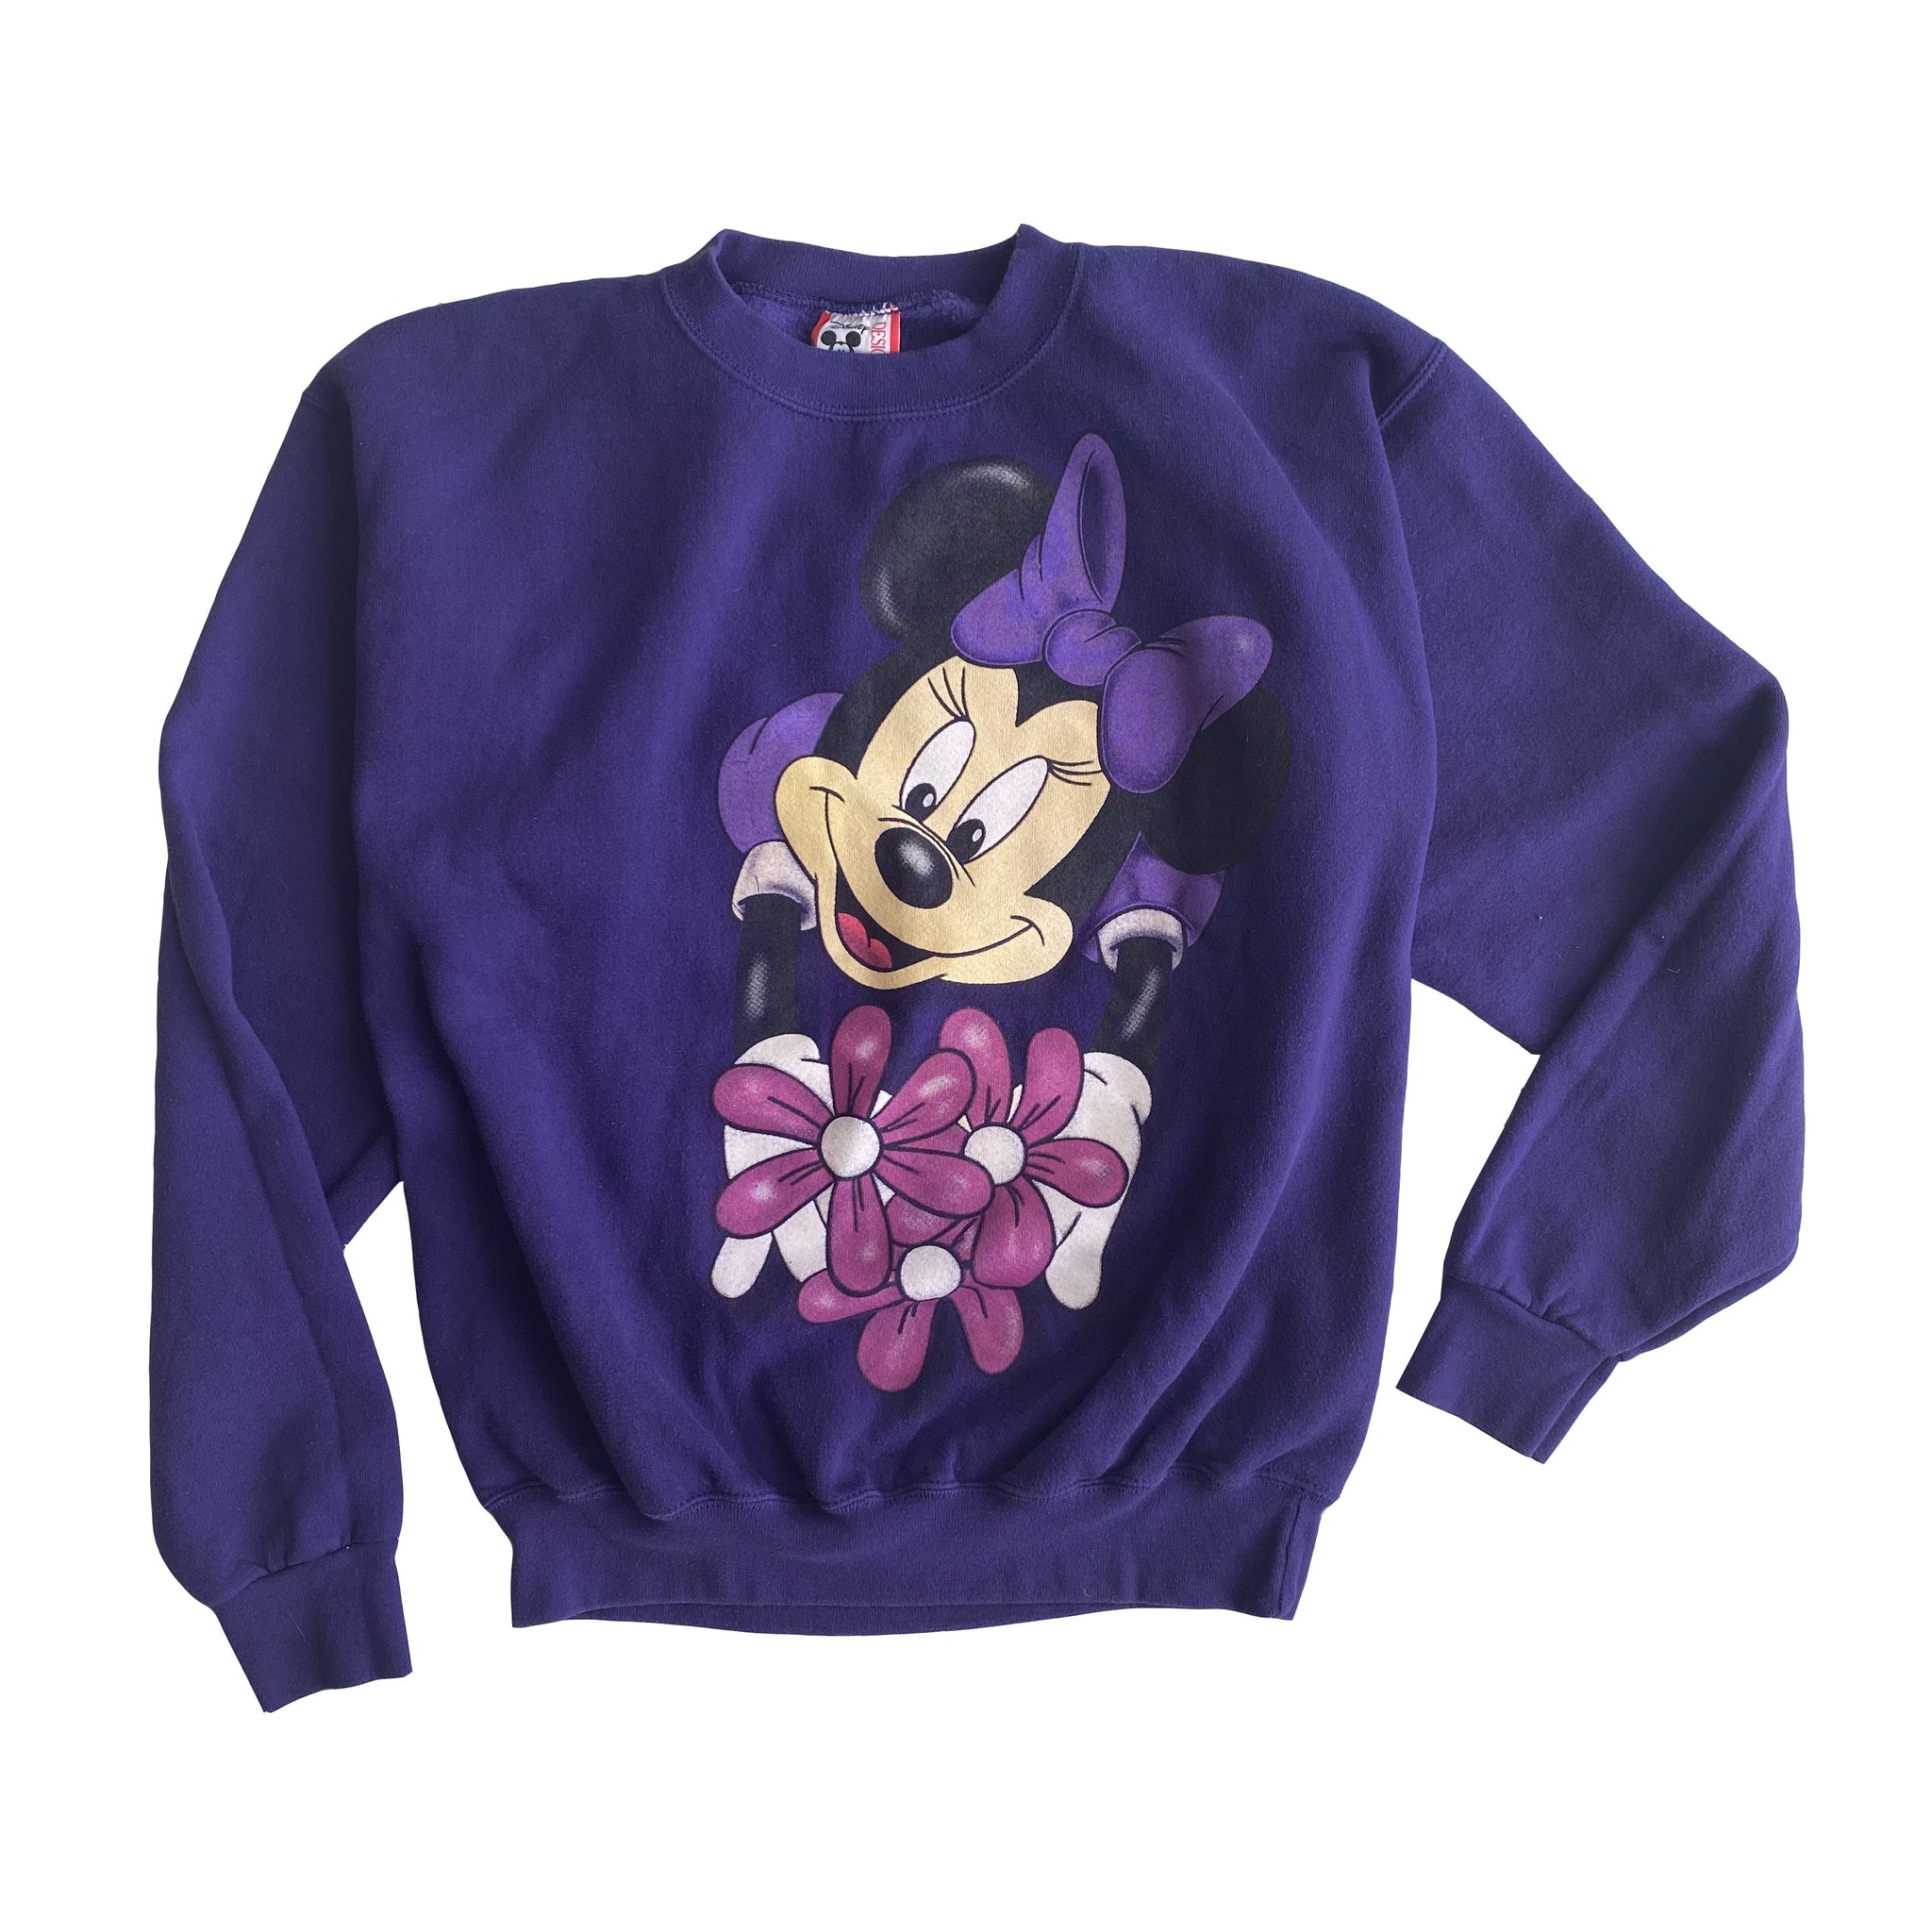 Flower Minnie Crew - S - VTG 90s